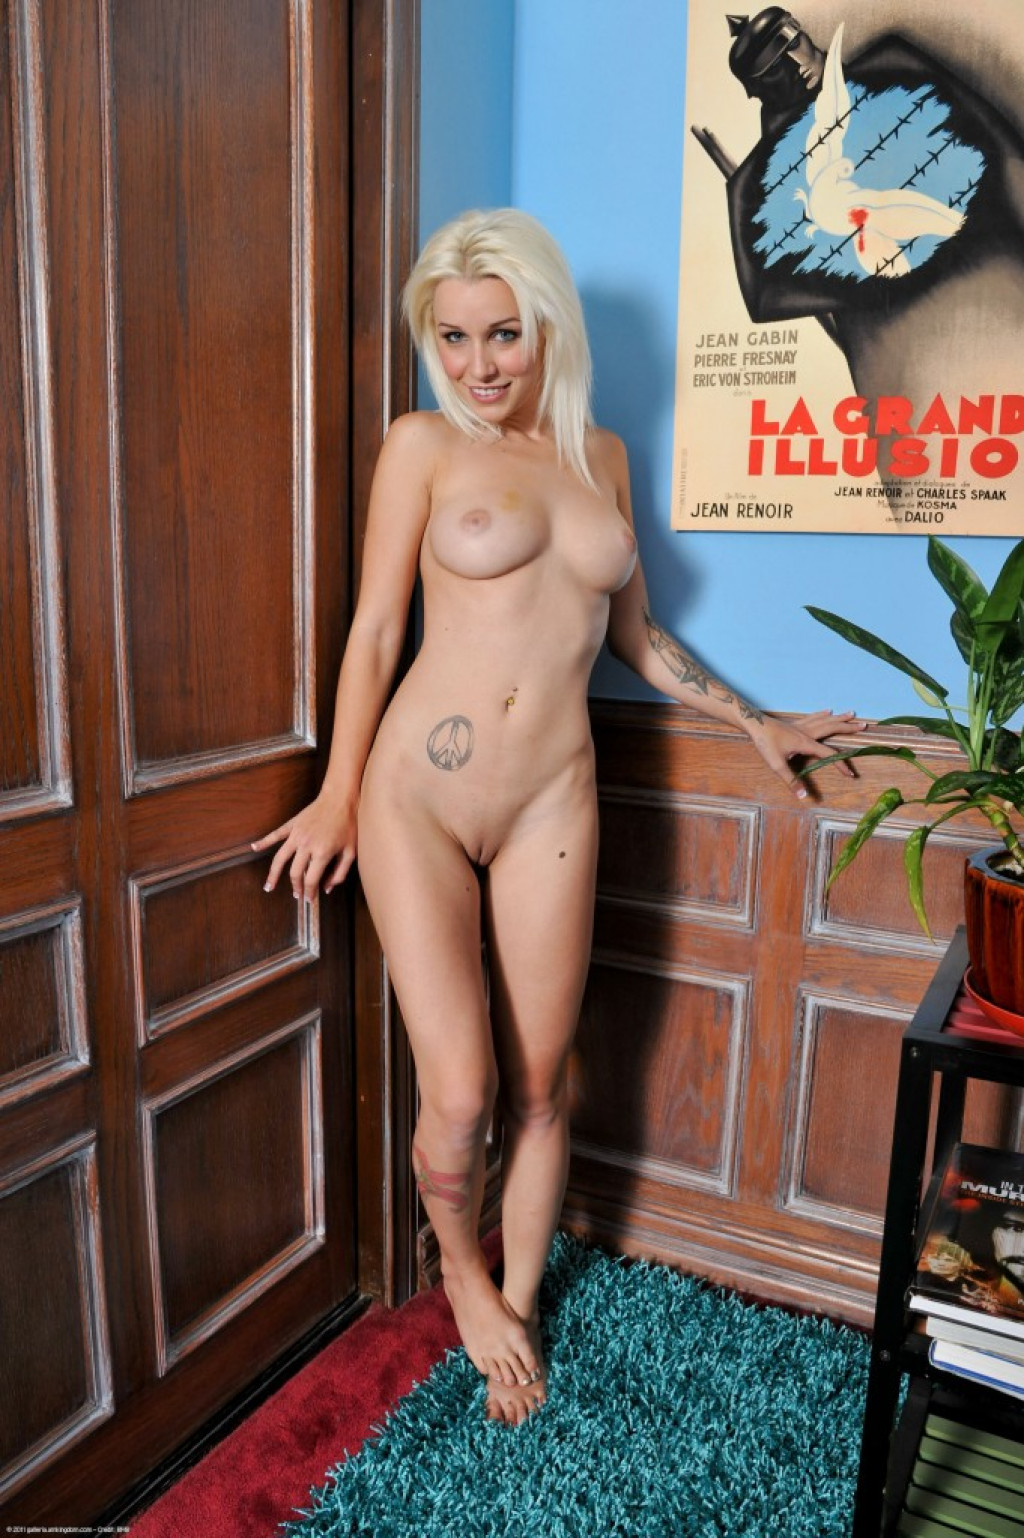 That interfere, Stevie jean in softcore gallery with